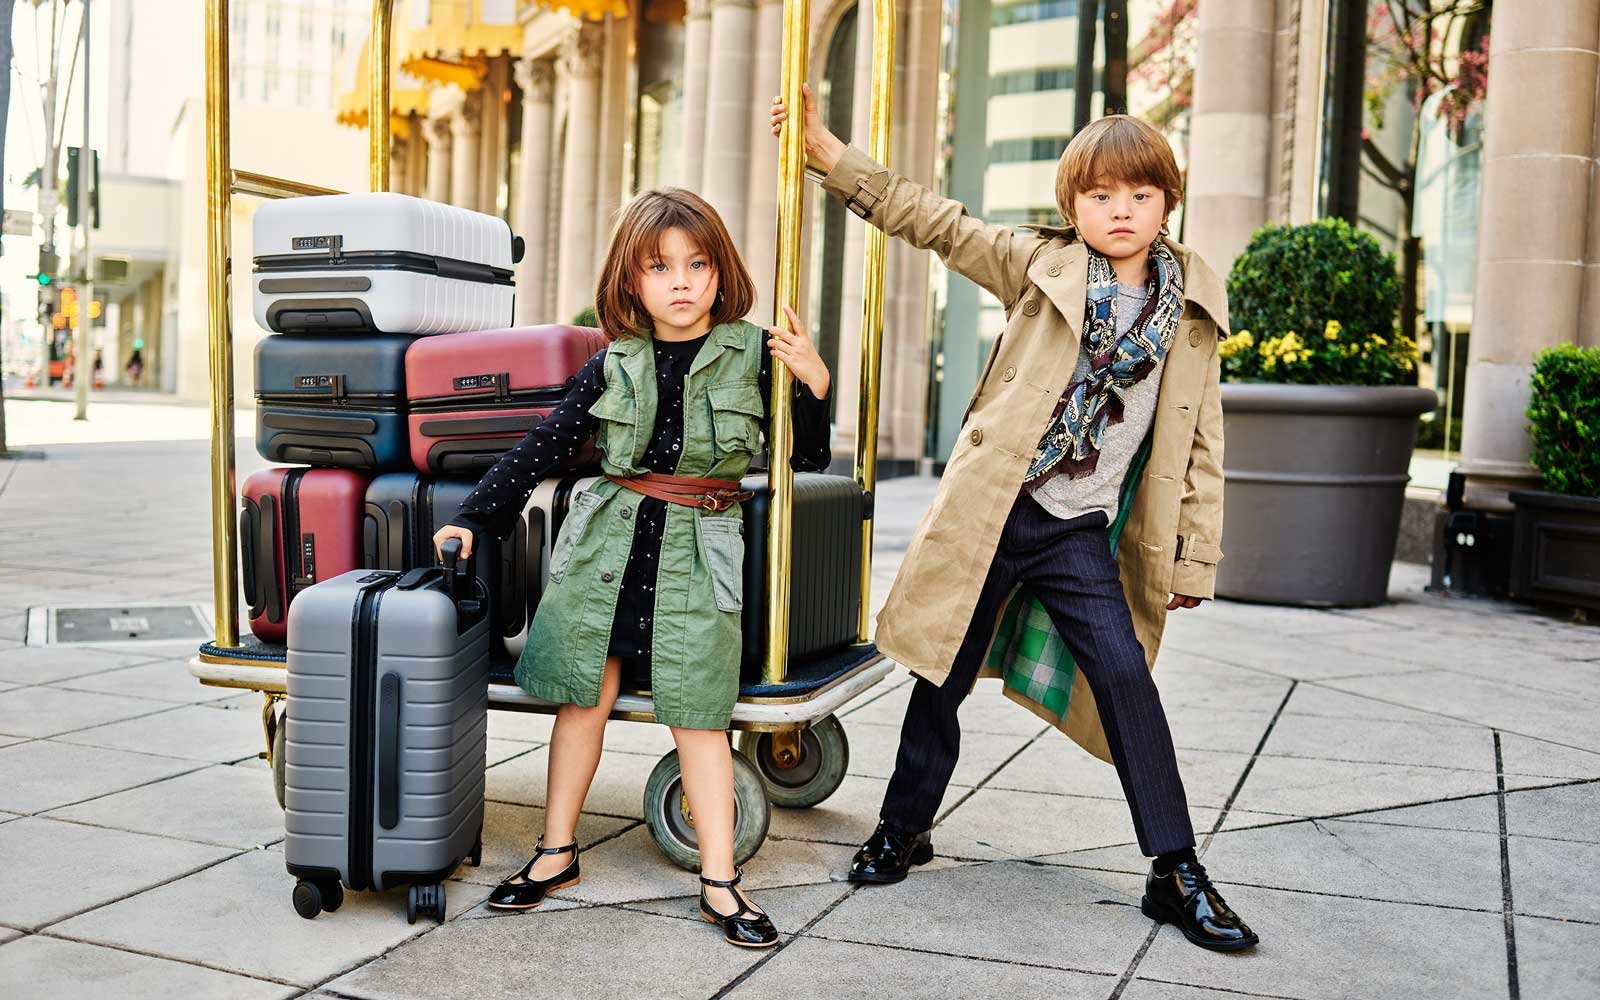 Kids with a Luggage Cart